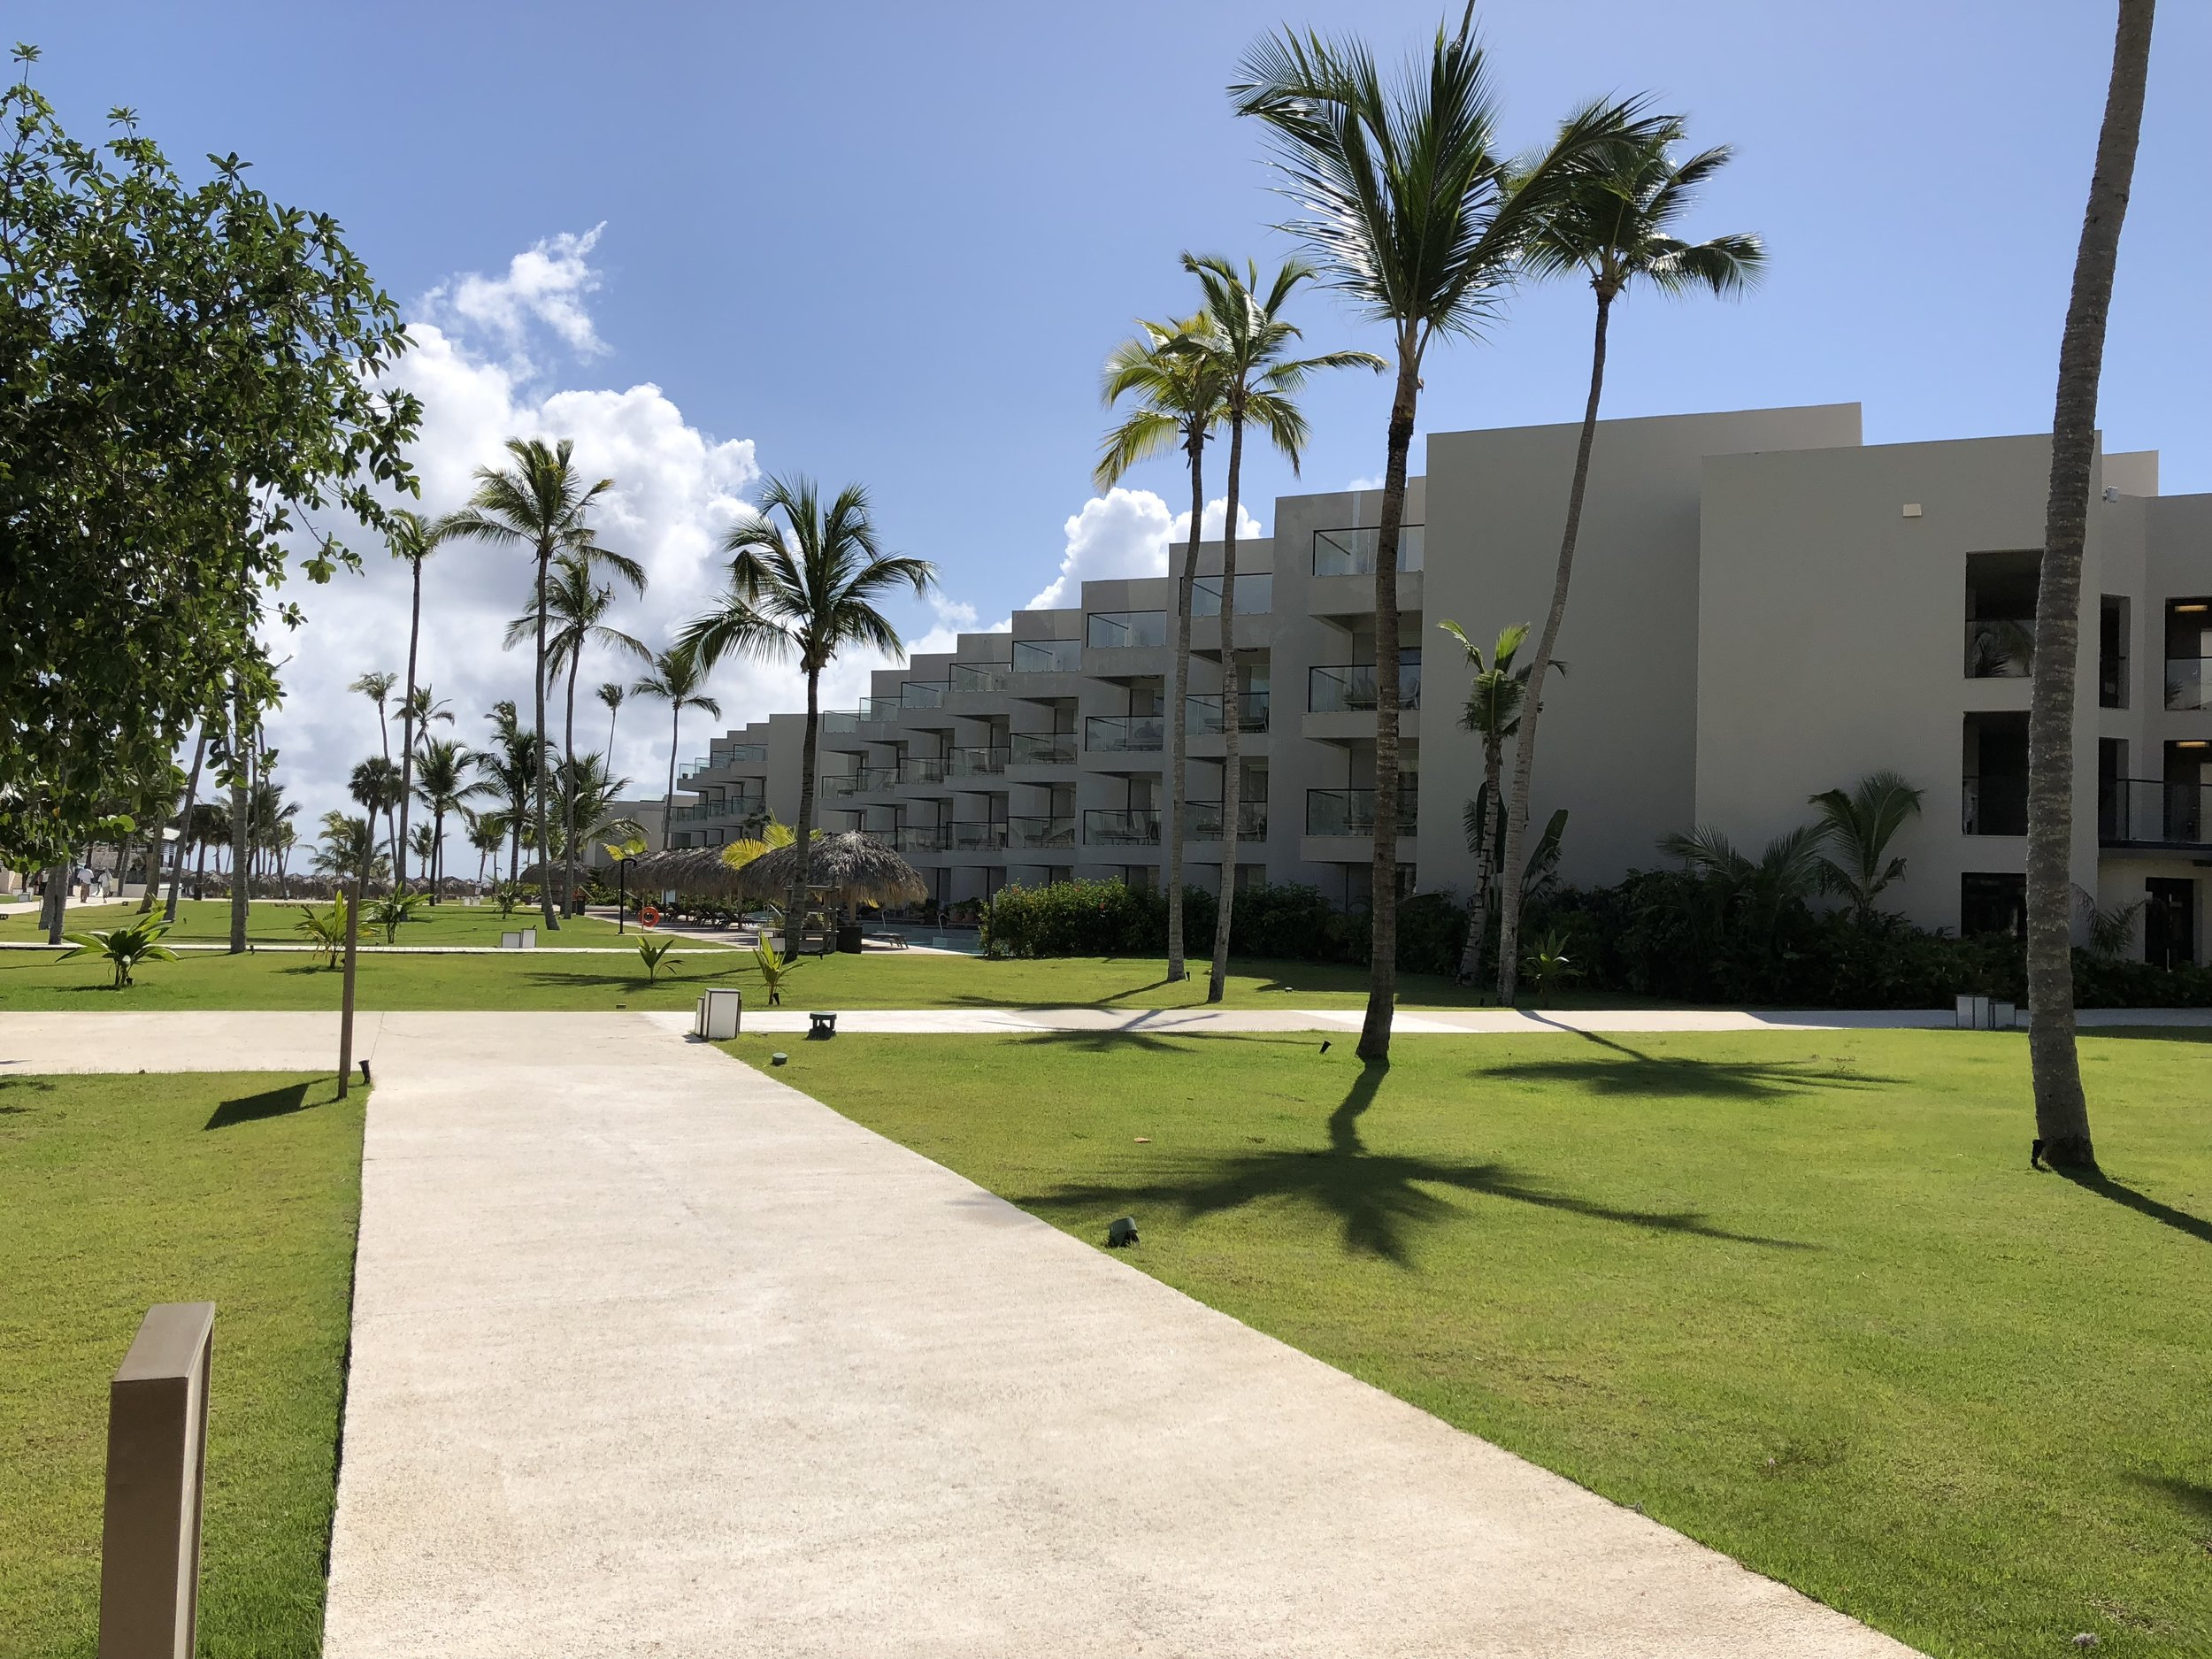 The rooms on the right side of the resort.